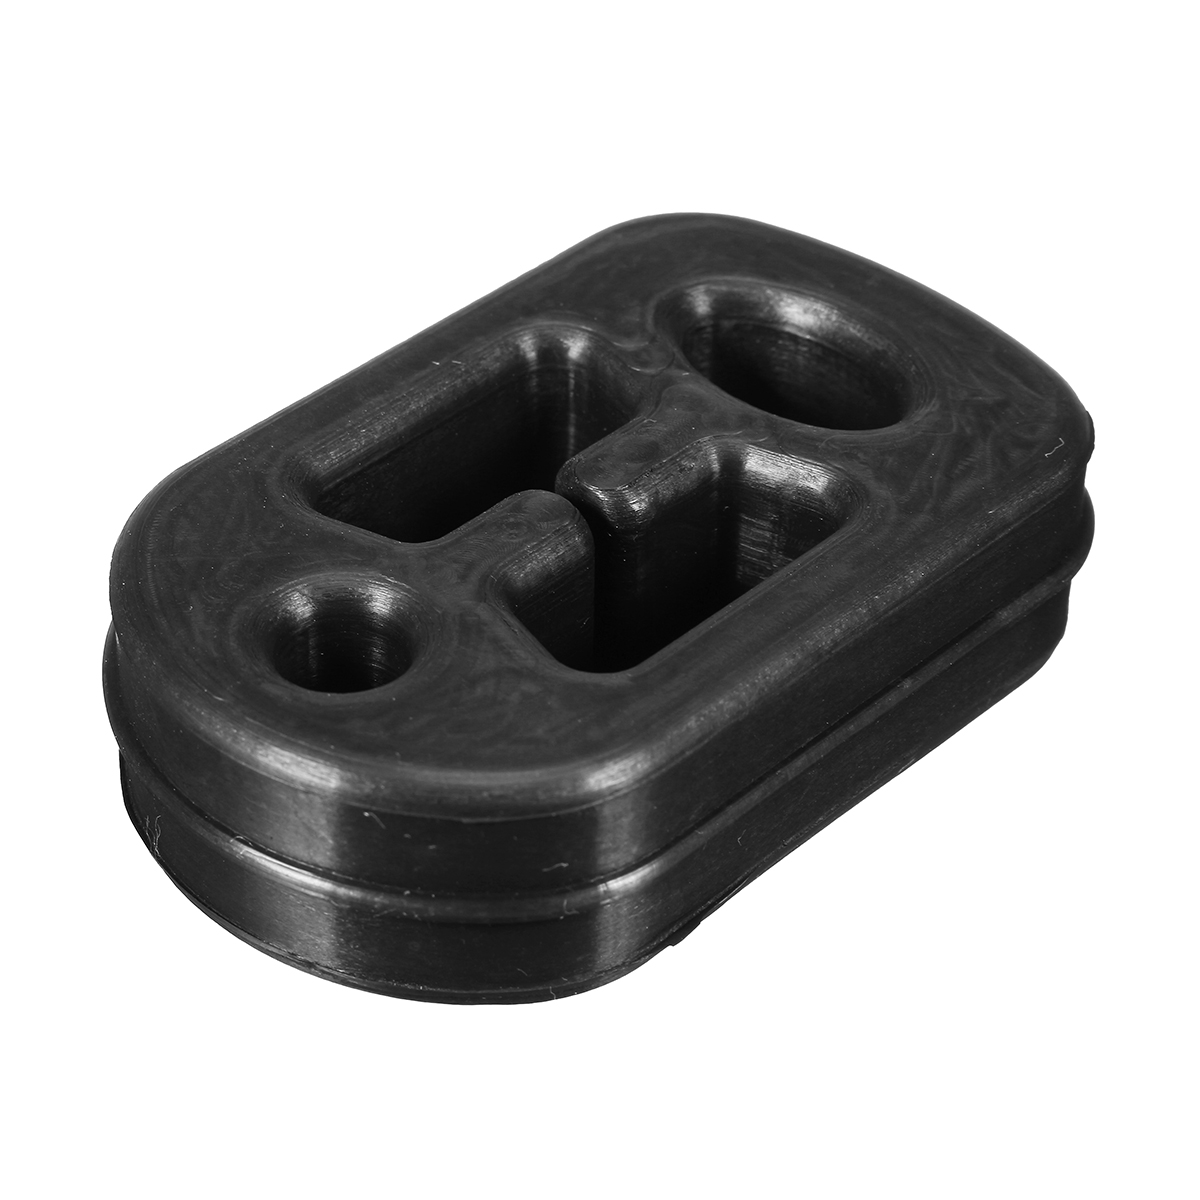 Exhaust Rubber Mount Mounting Ring Hanger Bracket Suppo